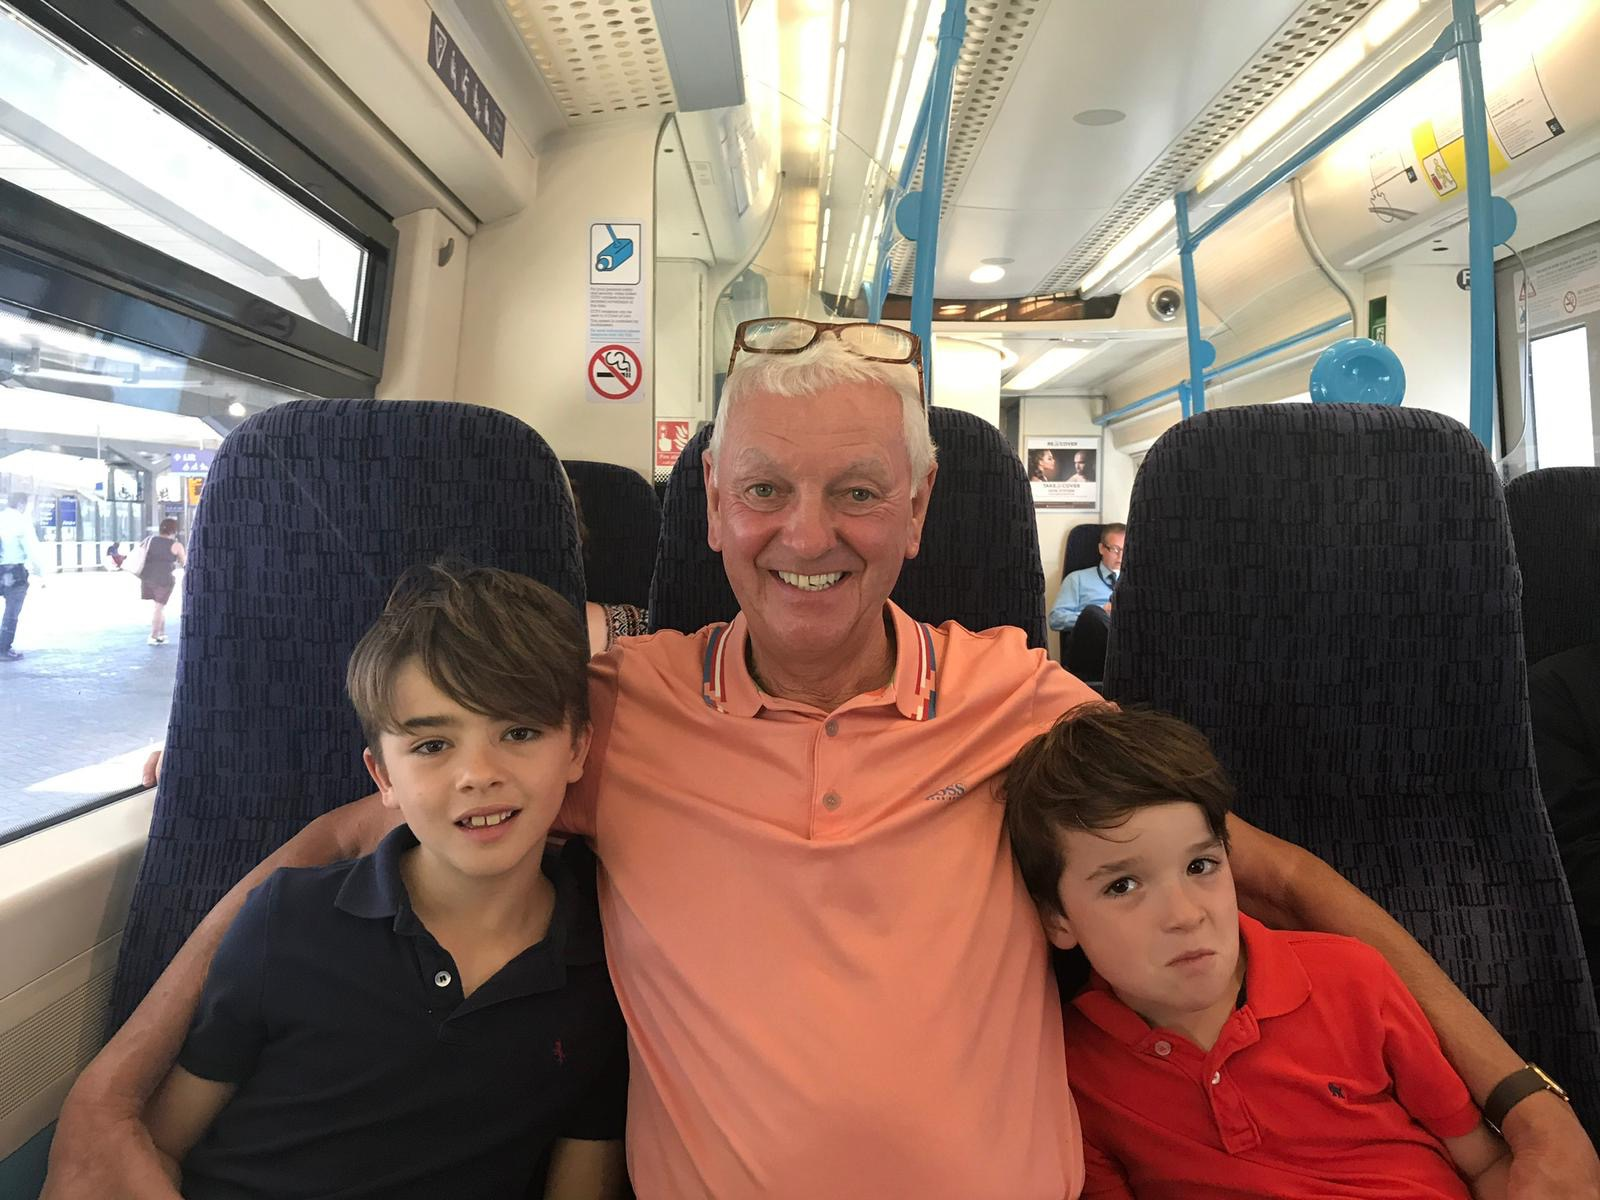 Skiing for Prostate Cancer UK – A Great Man We Lost Due To COVID19